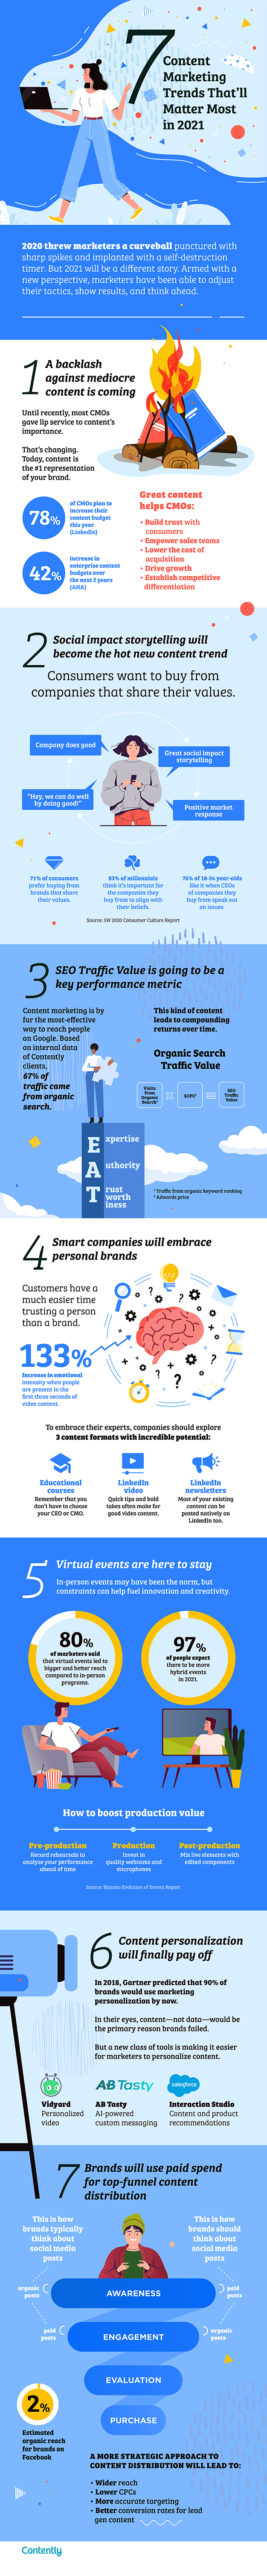 7 Content Marketing Trends That'll Matter Most This Year Infographic